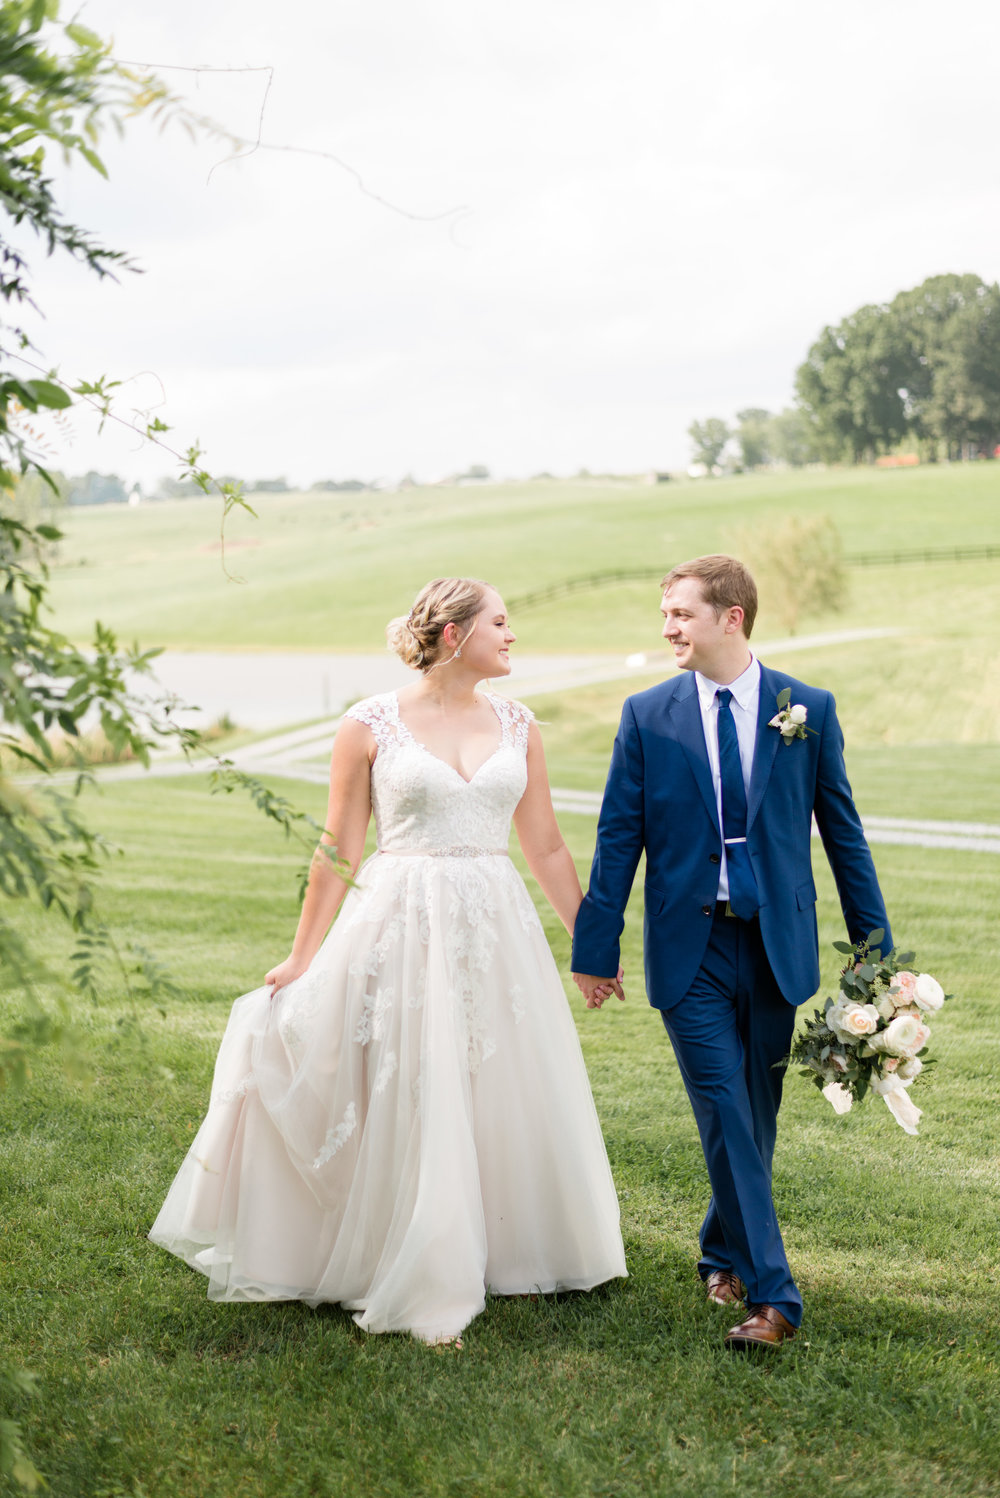 MARSALA FALL WEDDING AT THE OLD MILL FARM VENUE